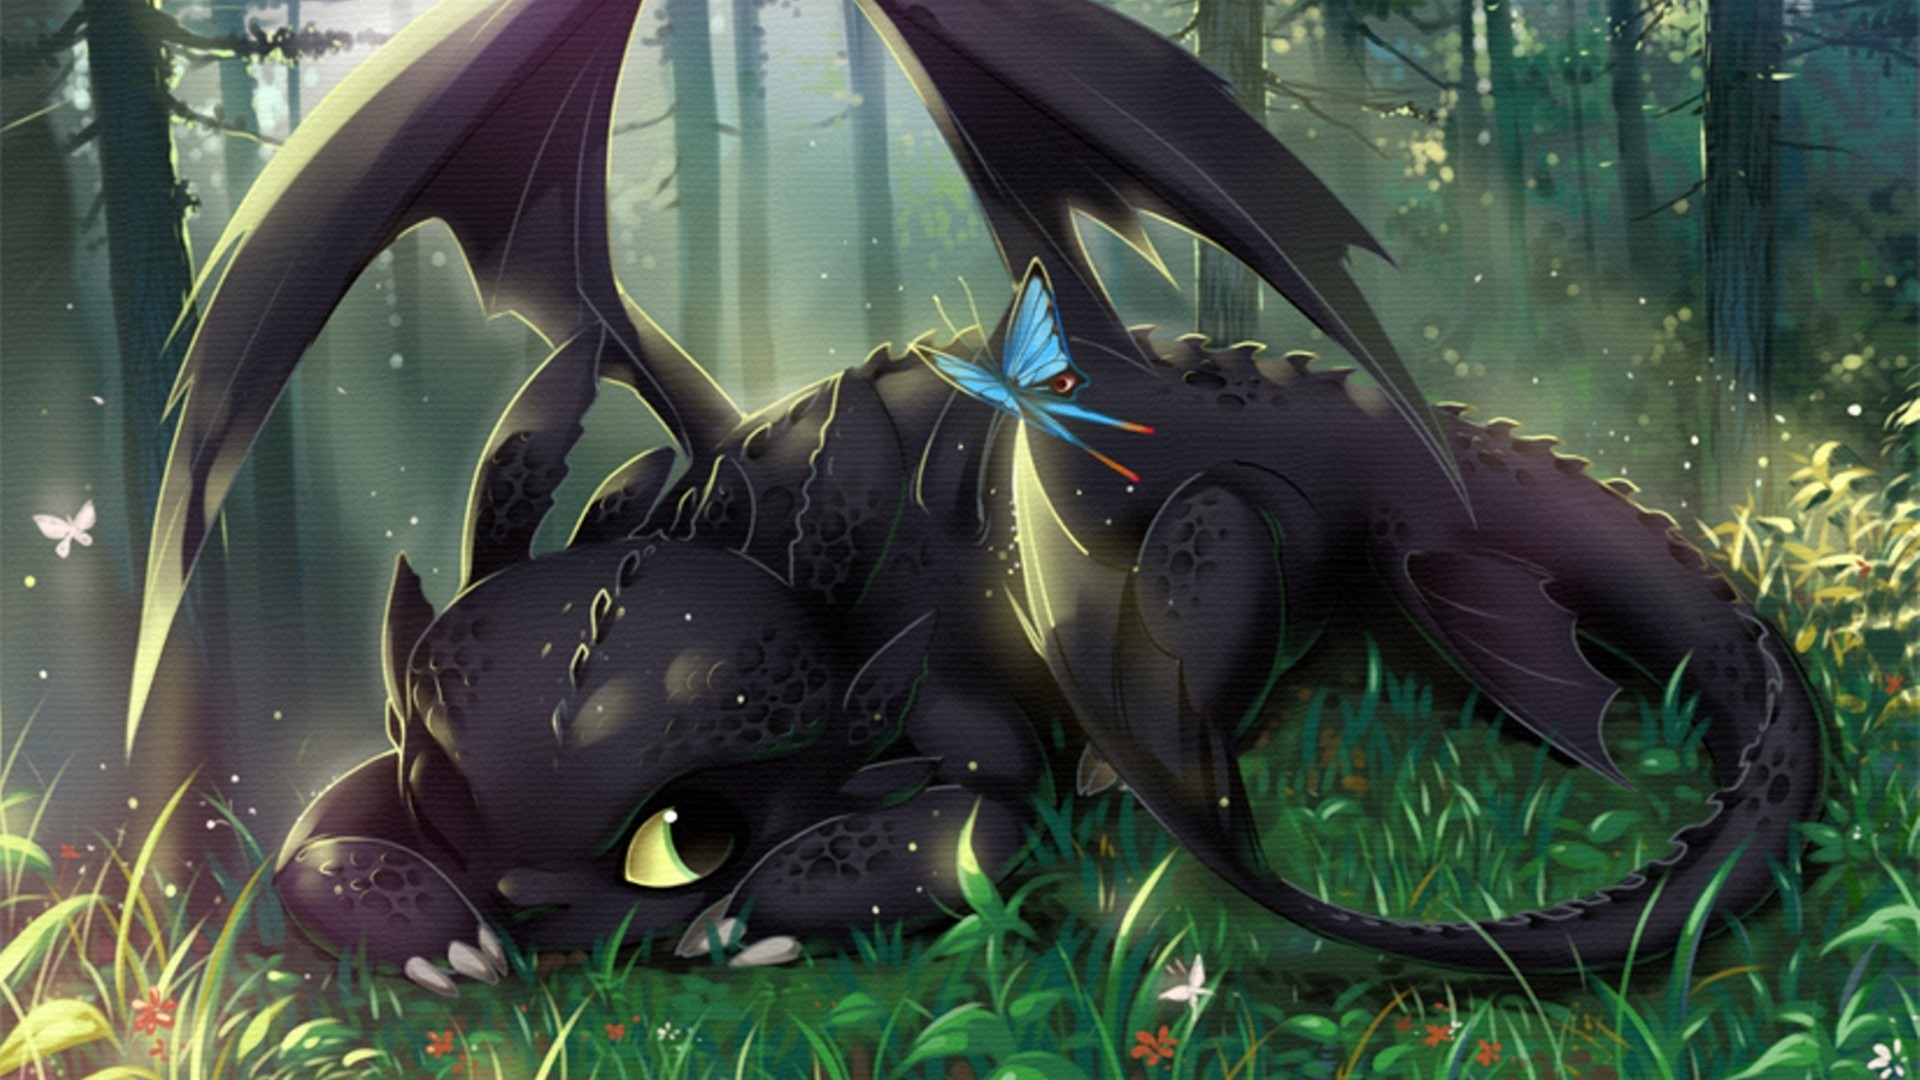 Toothless wallpaper hd 75 images - How to train your dragon hd download ...